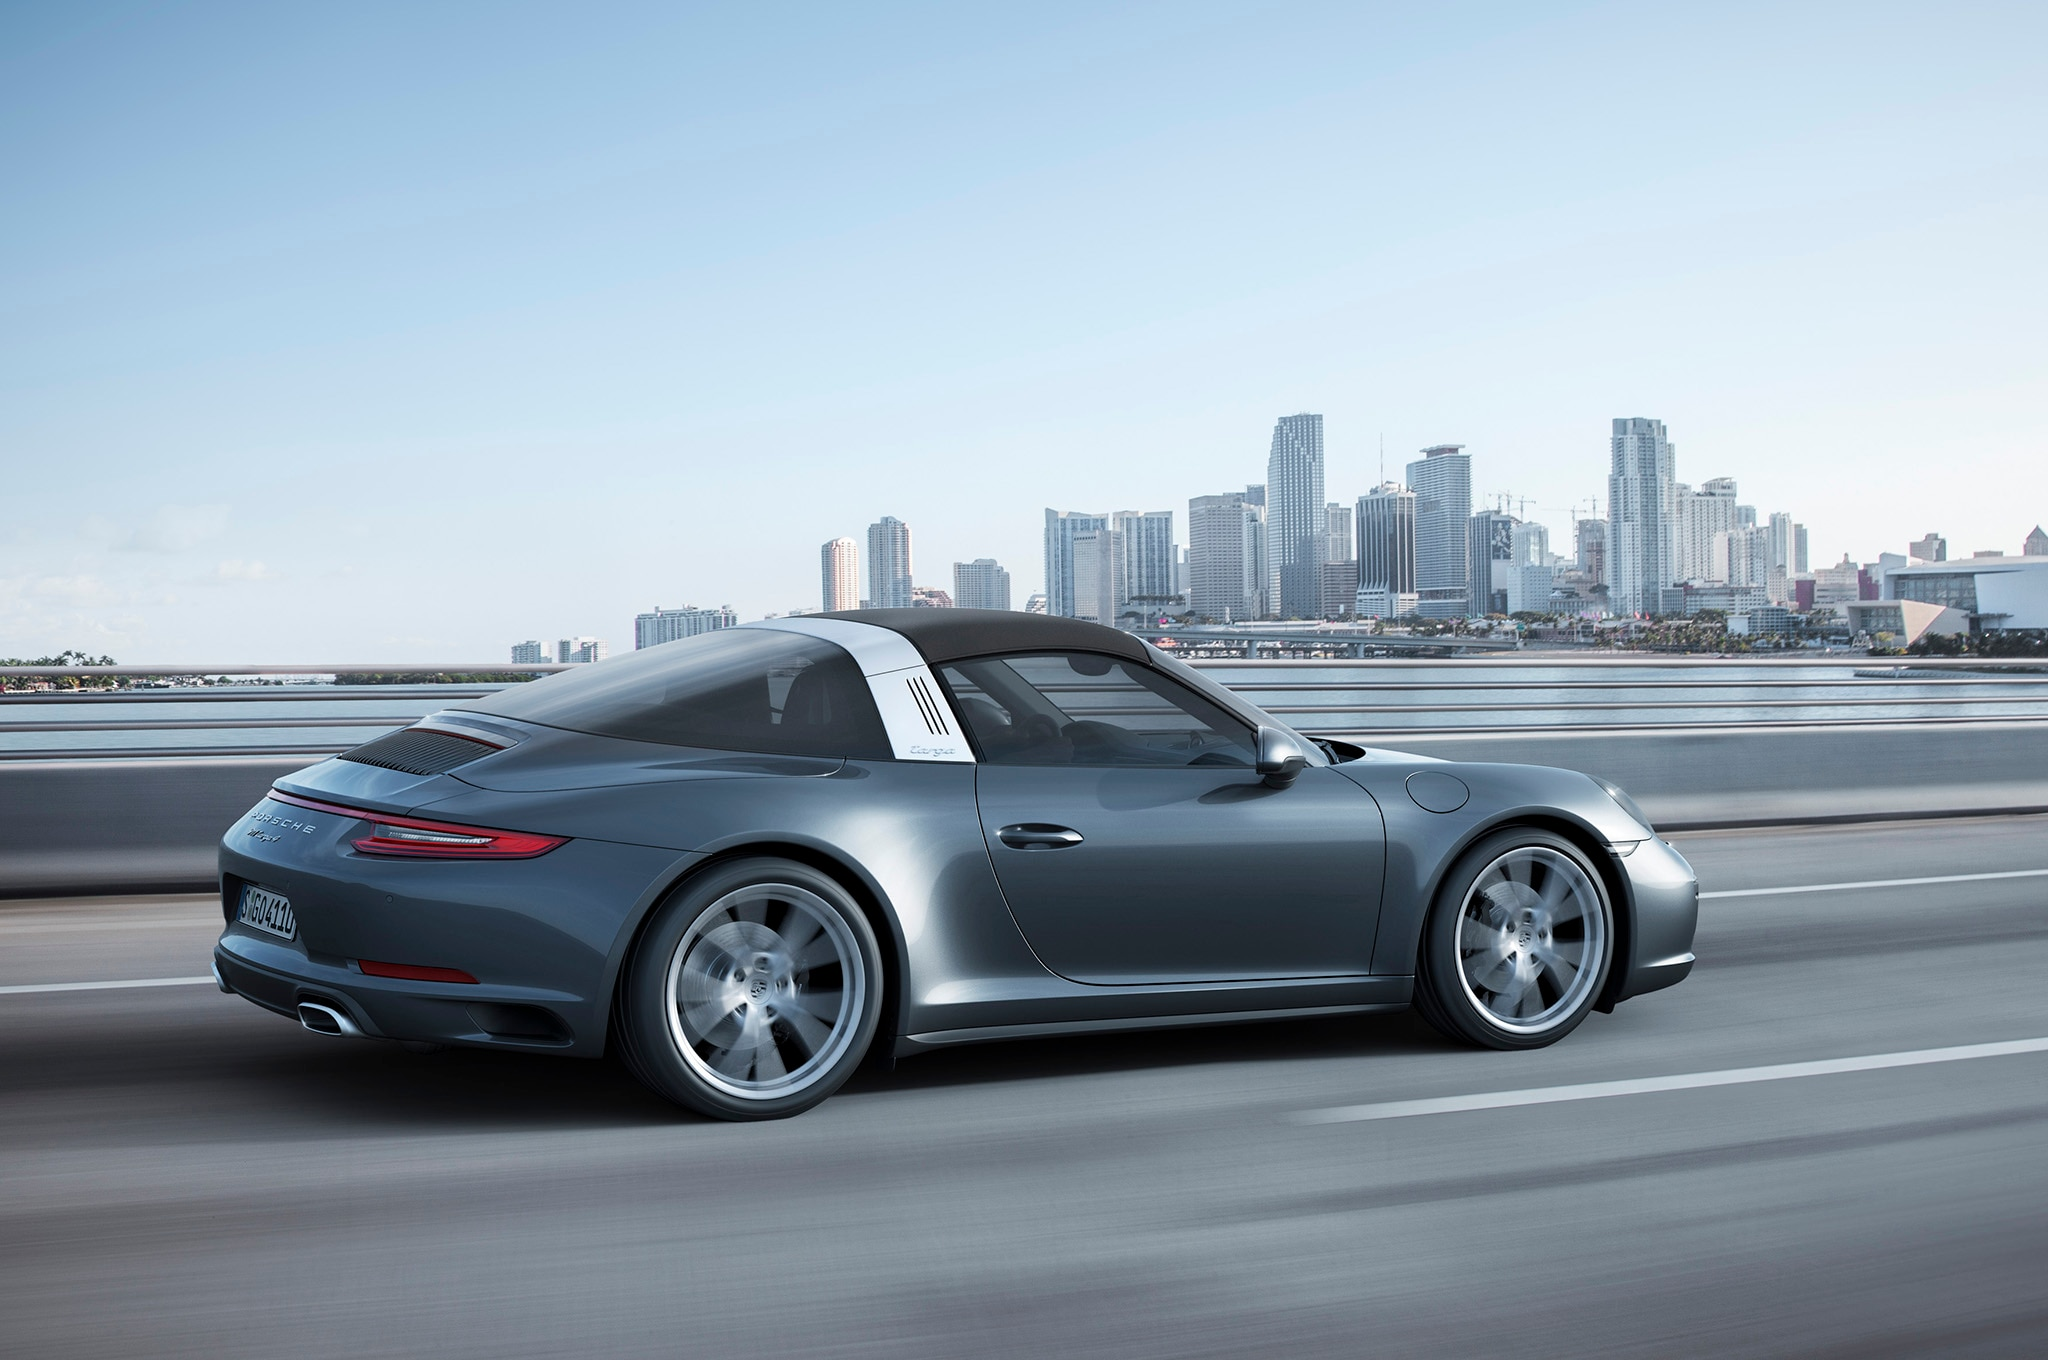 2017 Porsche 911 Carrera 4 And Targa 4 Receive